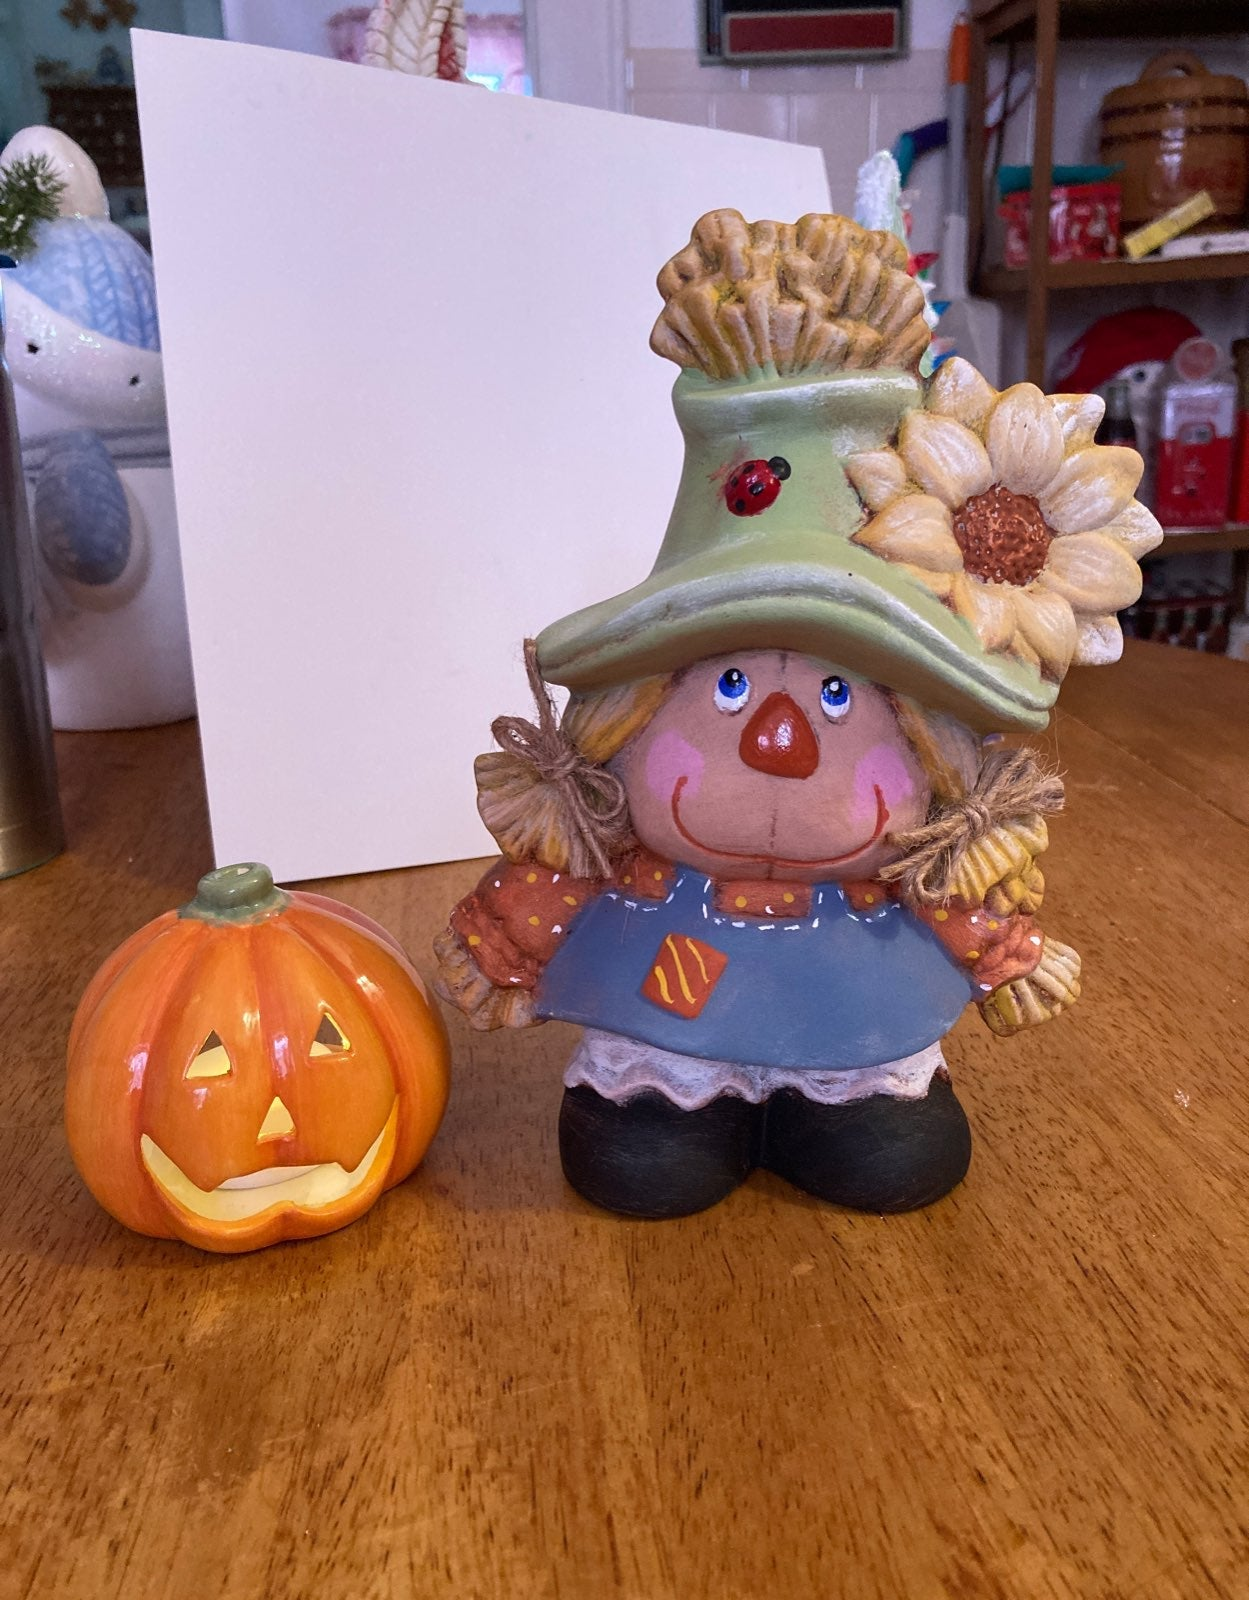 Scarecrow girl and pumkin